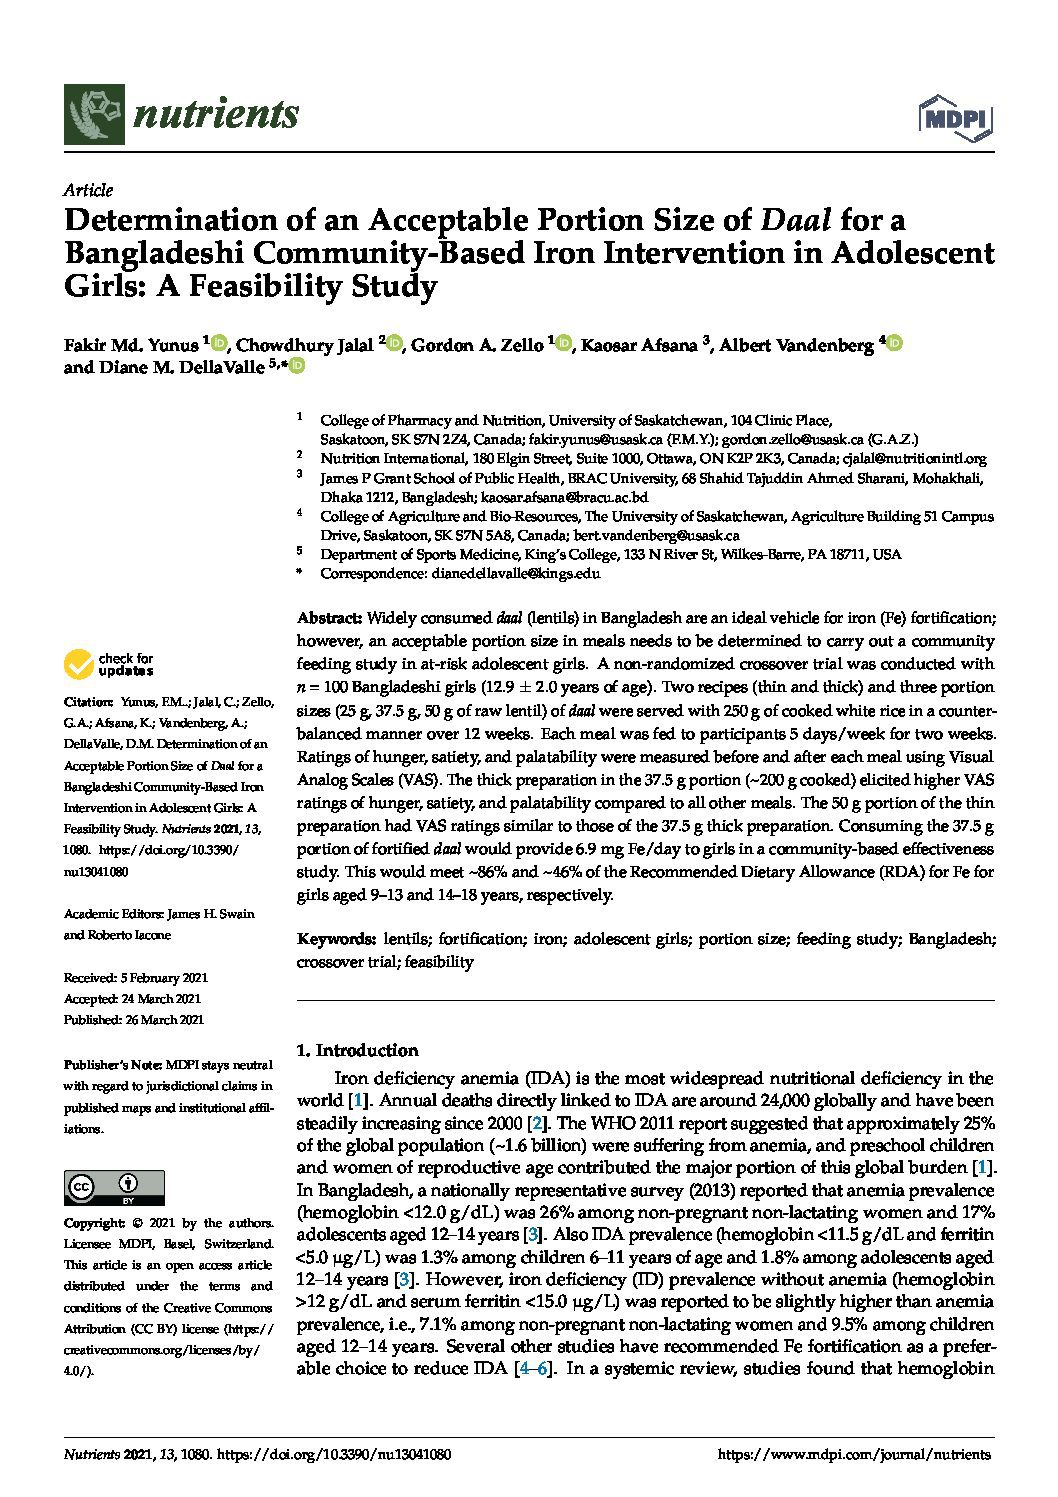 Determination of an Acceptable Portion Size of <em>Daal</em> for a Bangladeshi Community-Based Iron Intervention in Adolescent Girls: A Feasibility Study thumbnail